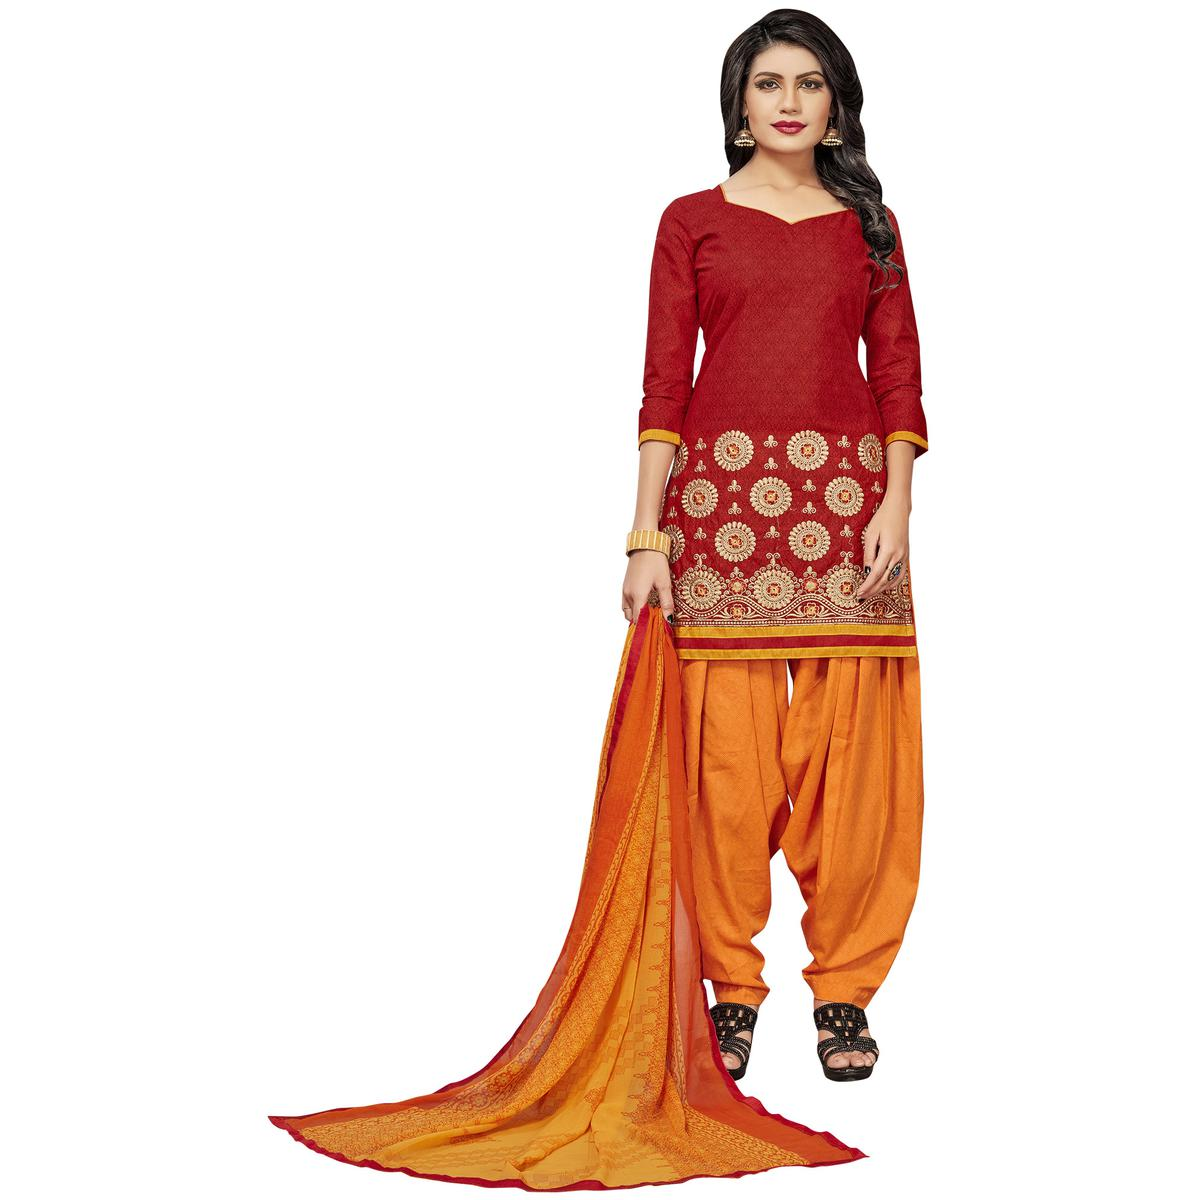 Groovy Red Colored Embroidered Cotton Dress Material